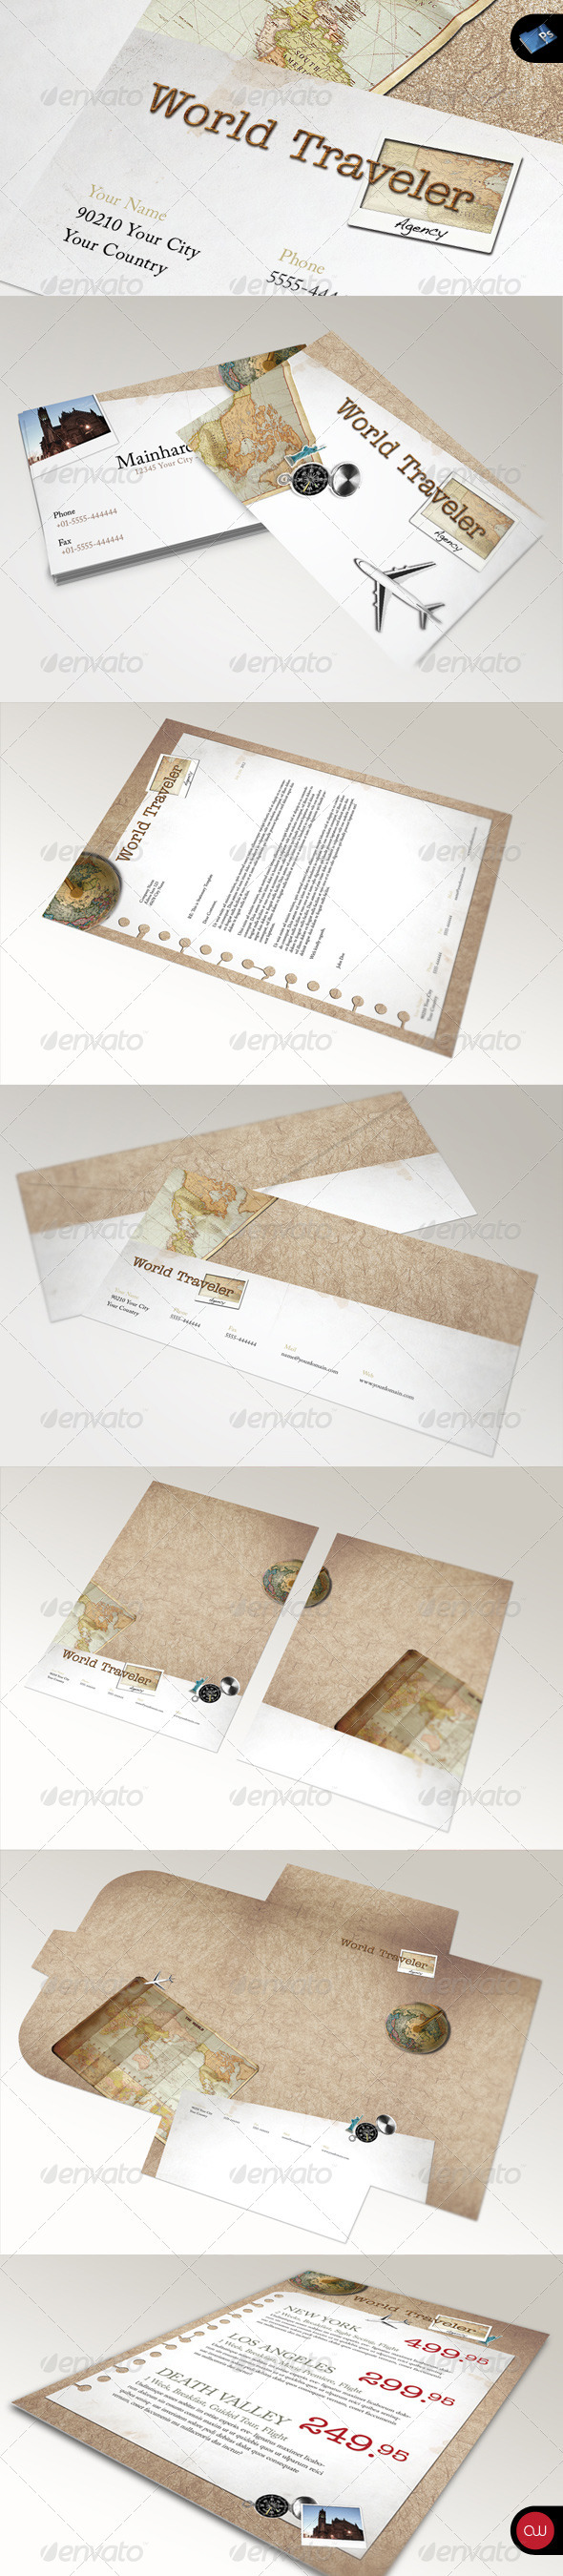 Retro Stationary Template - Vol.1 - Stationery Print Templates